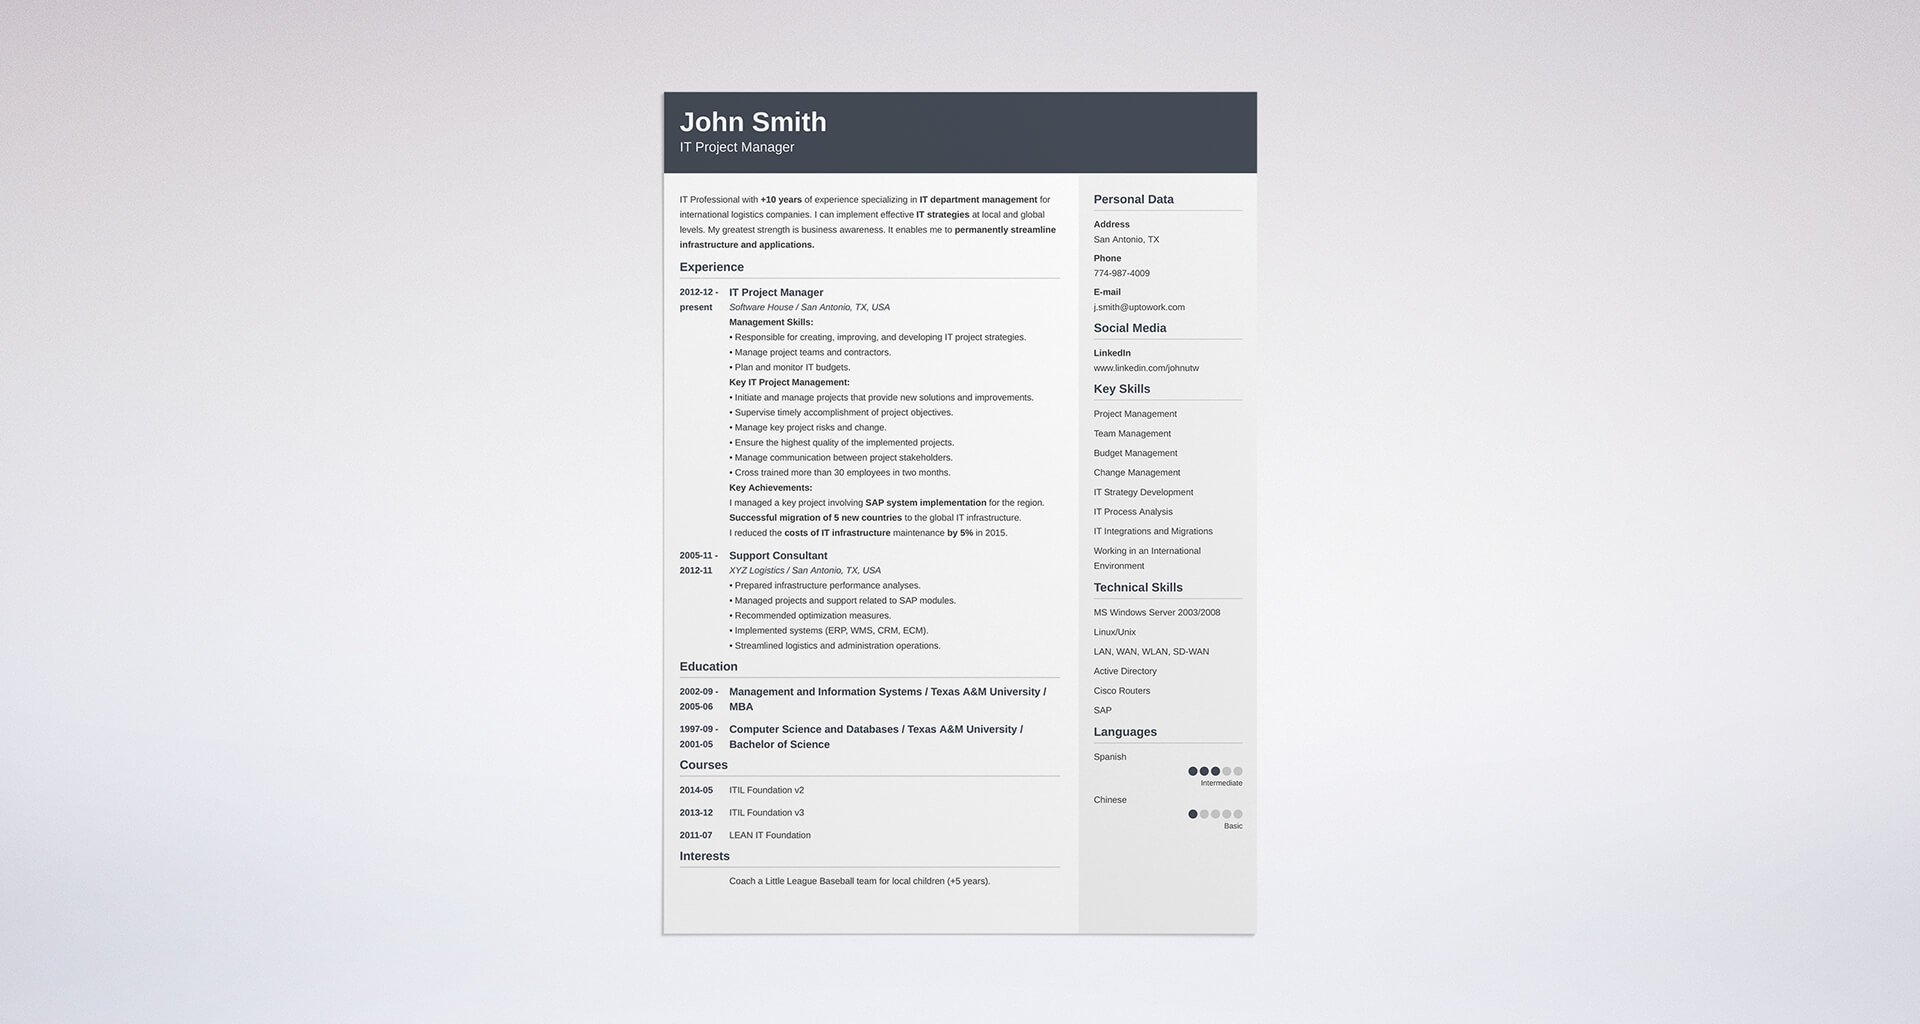 resume formats how to choose the best one examples combination resume format example